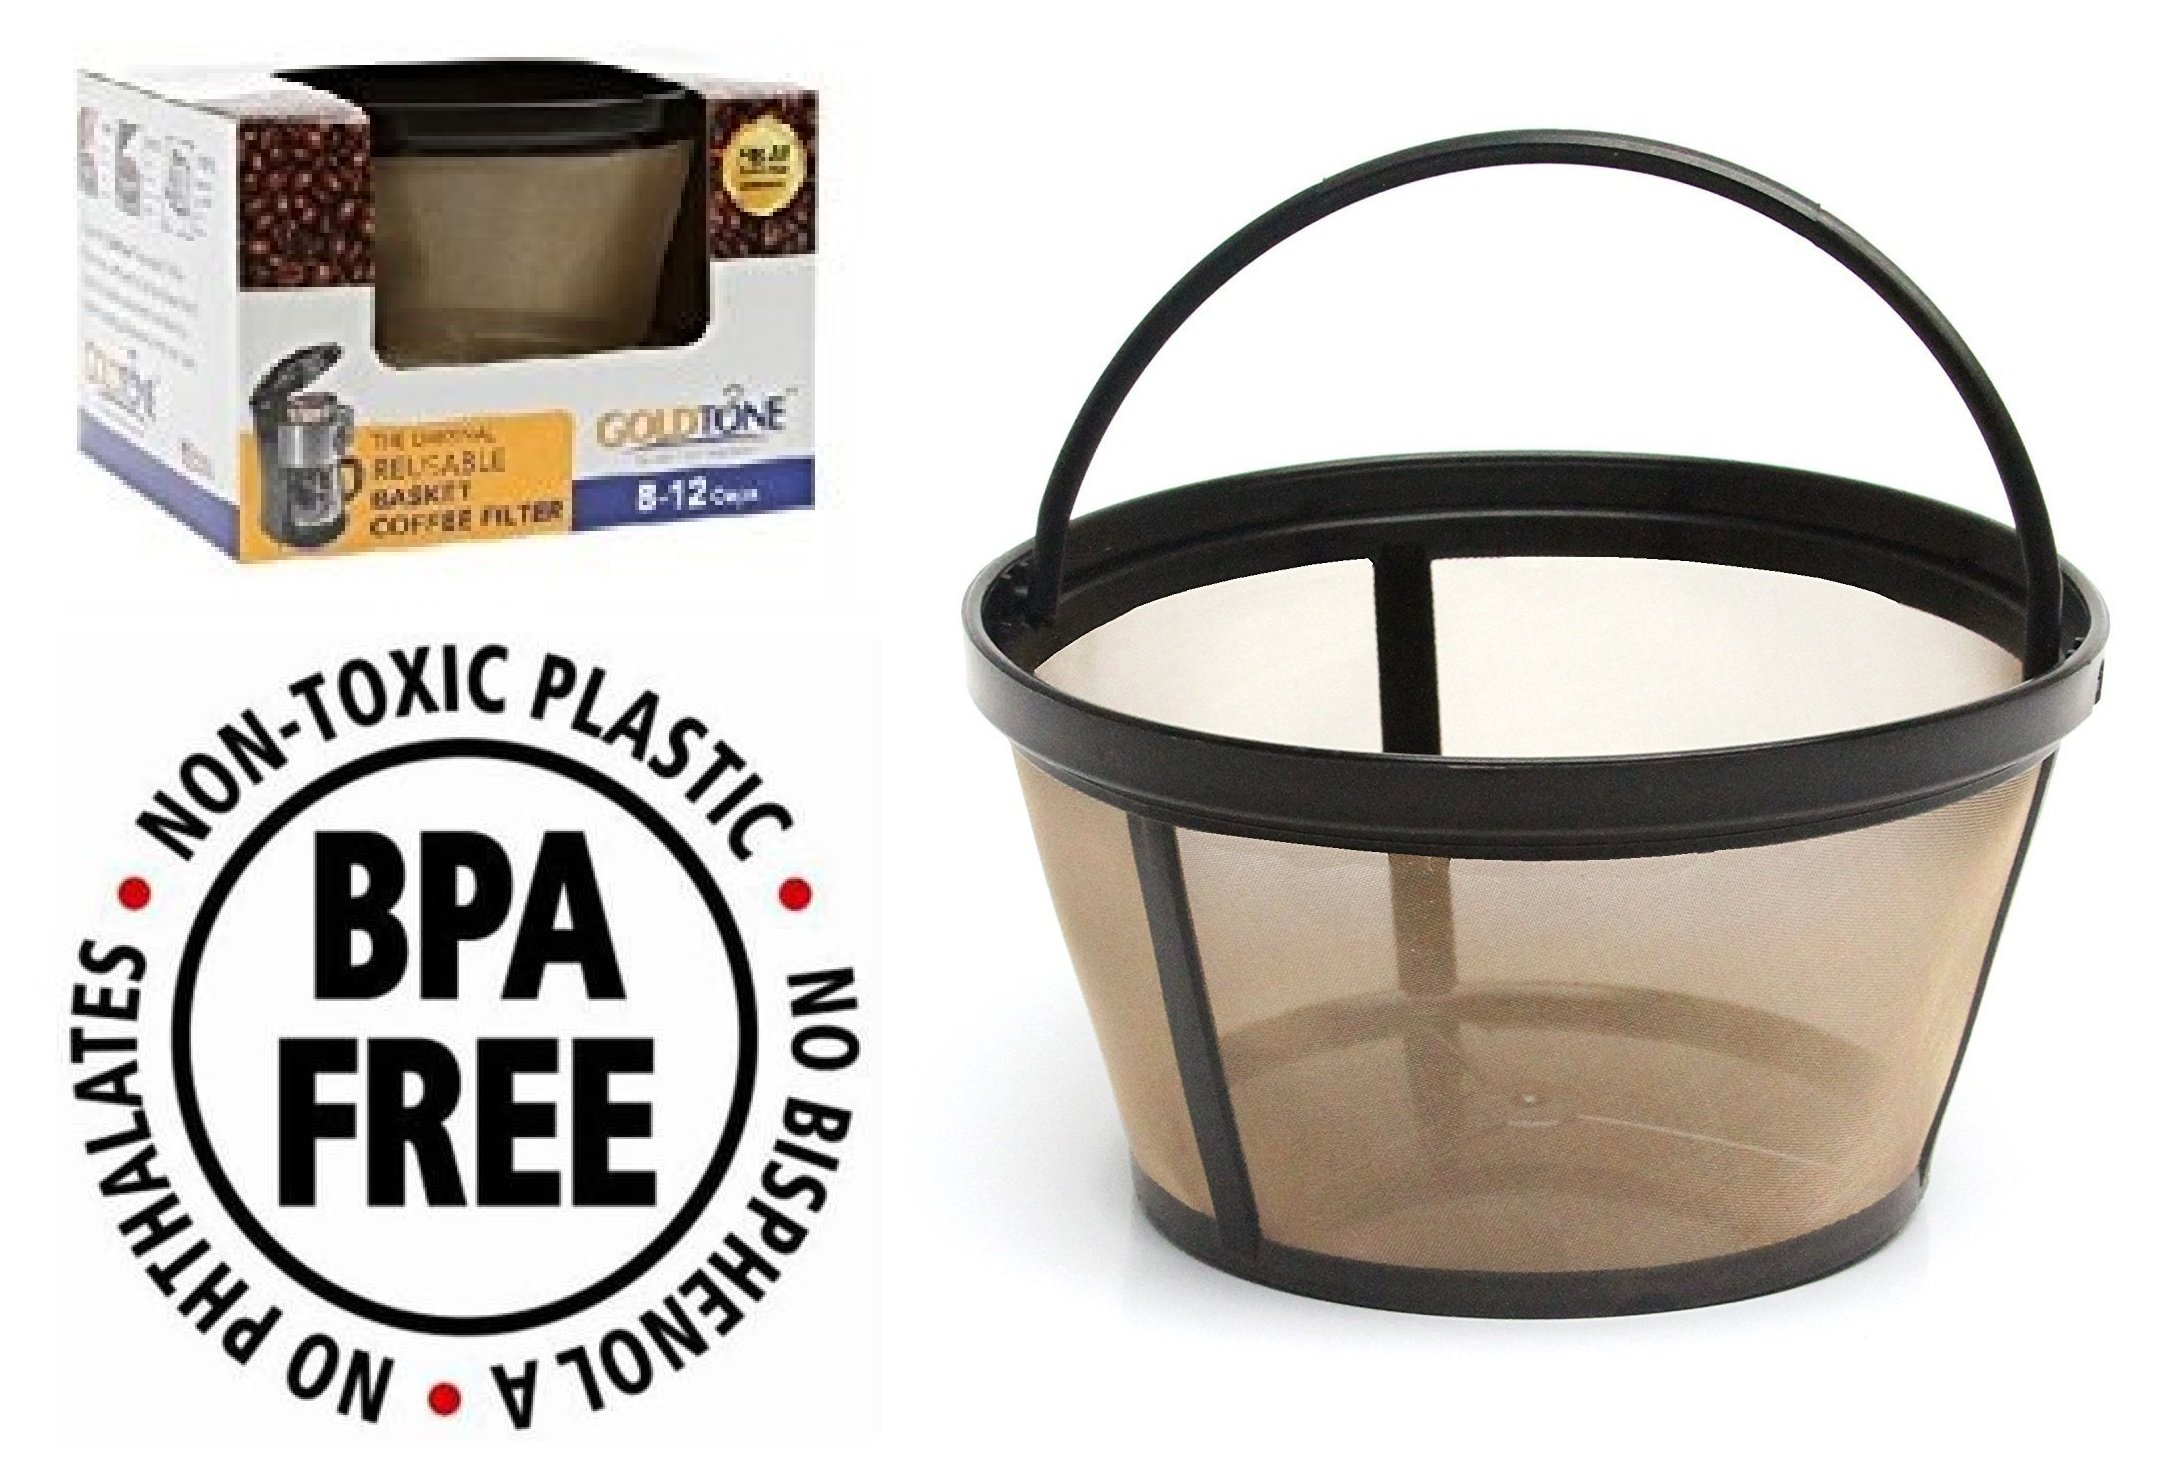 GOLDTONE Reusable 8-12 Cup Basket Coffee Filter fits Mr. Coffee Makers and Brewers, BPA Free.